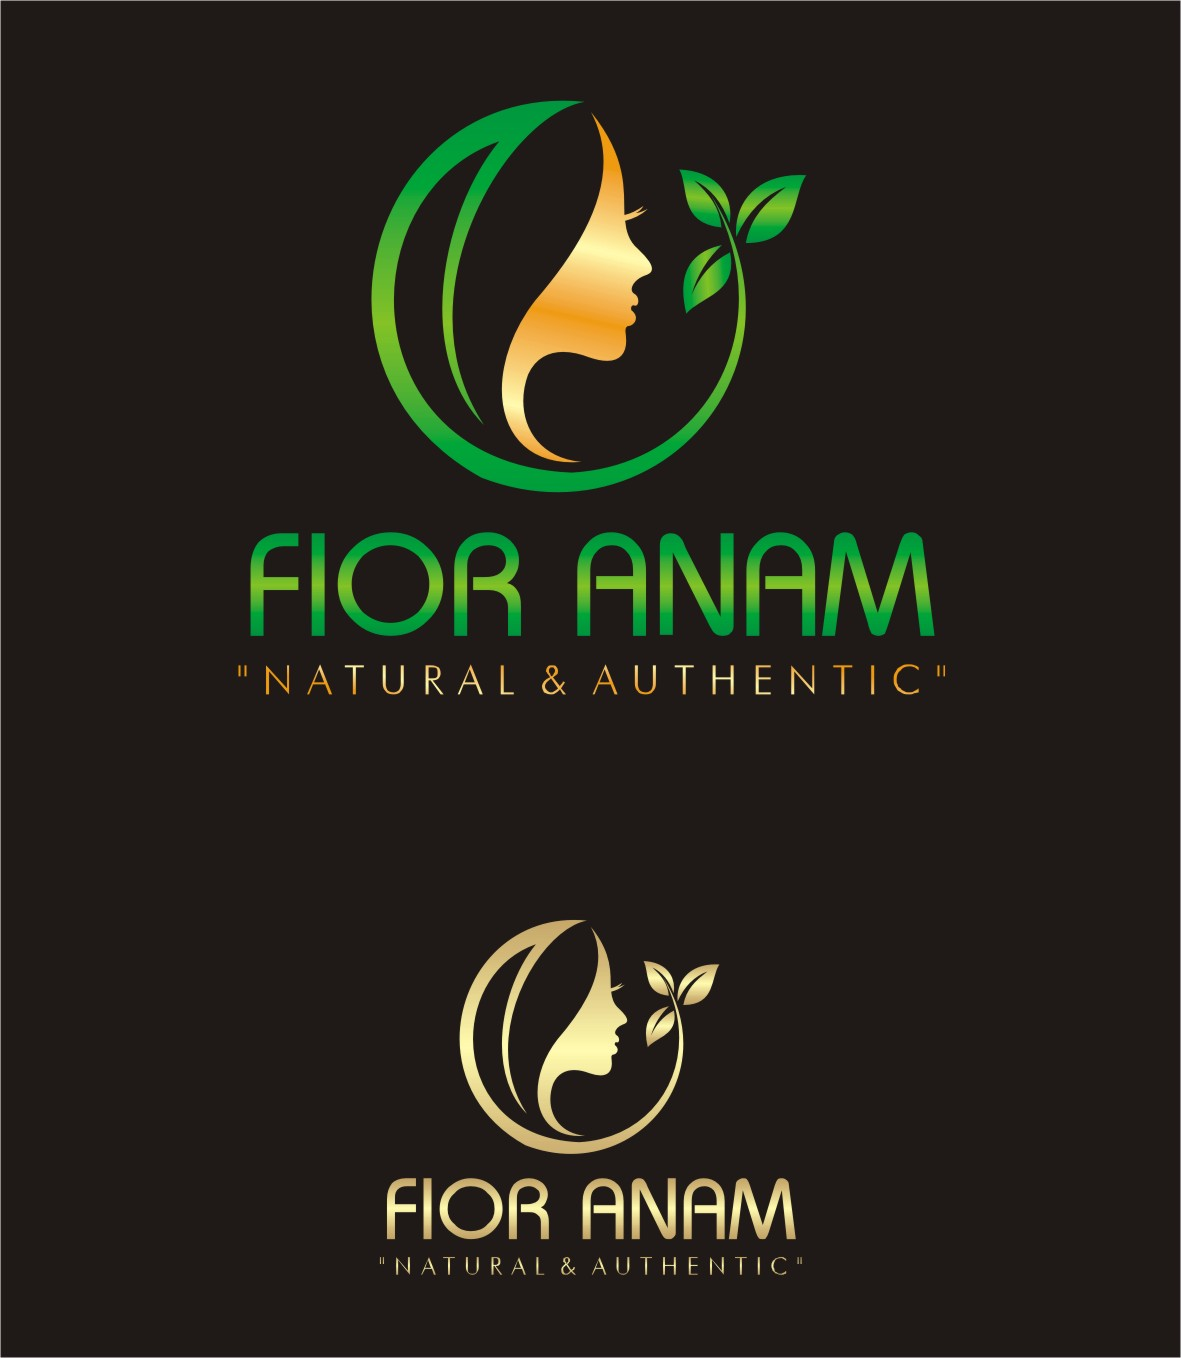 Logo Design by Lynx Graphics - Entry No. 393 in the Logo Design Contest Creative Logo Design for Fior Anam.